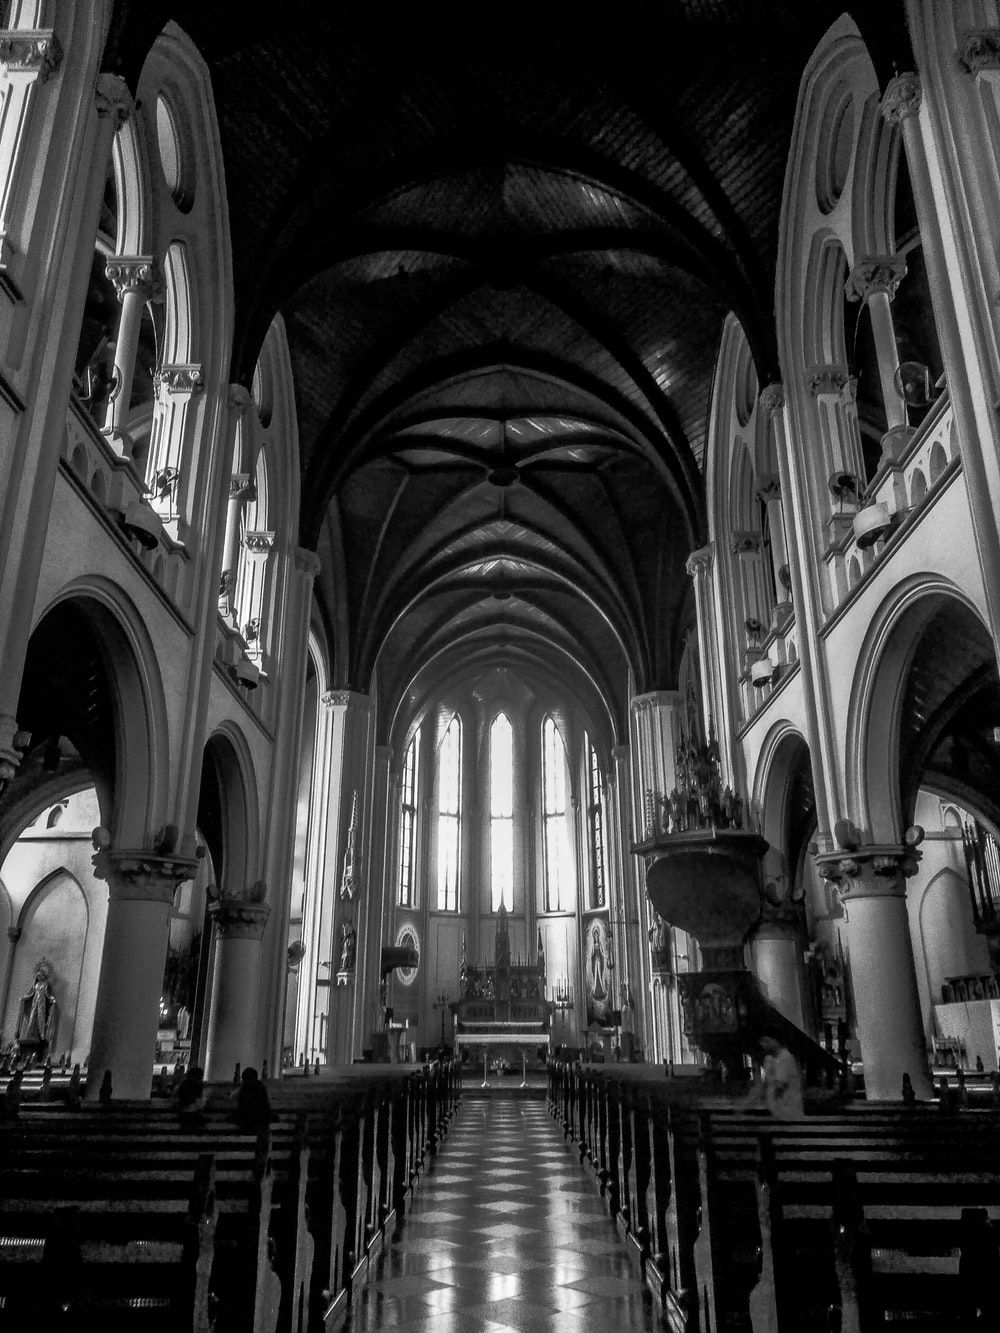 grayscale photo of cathedral interior